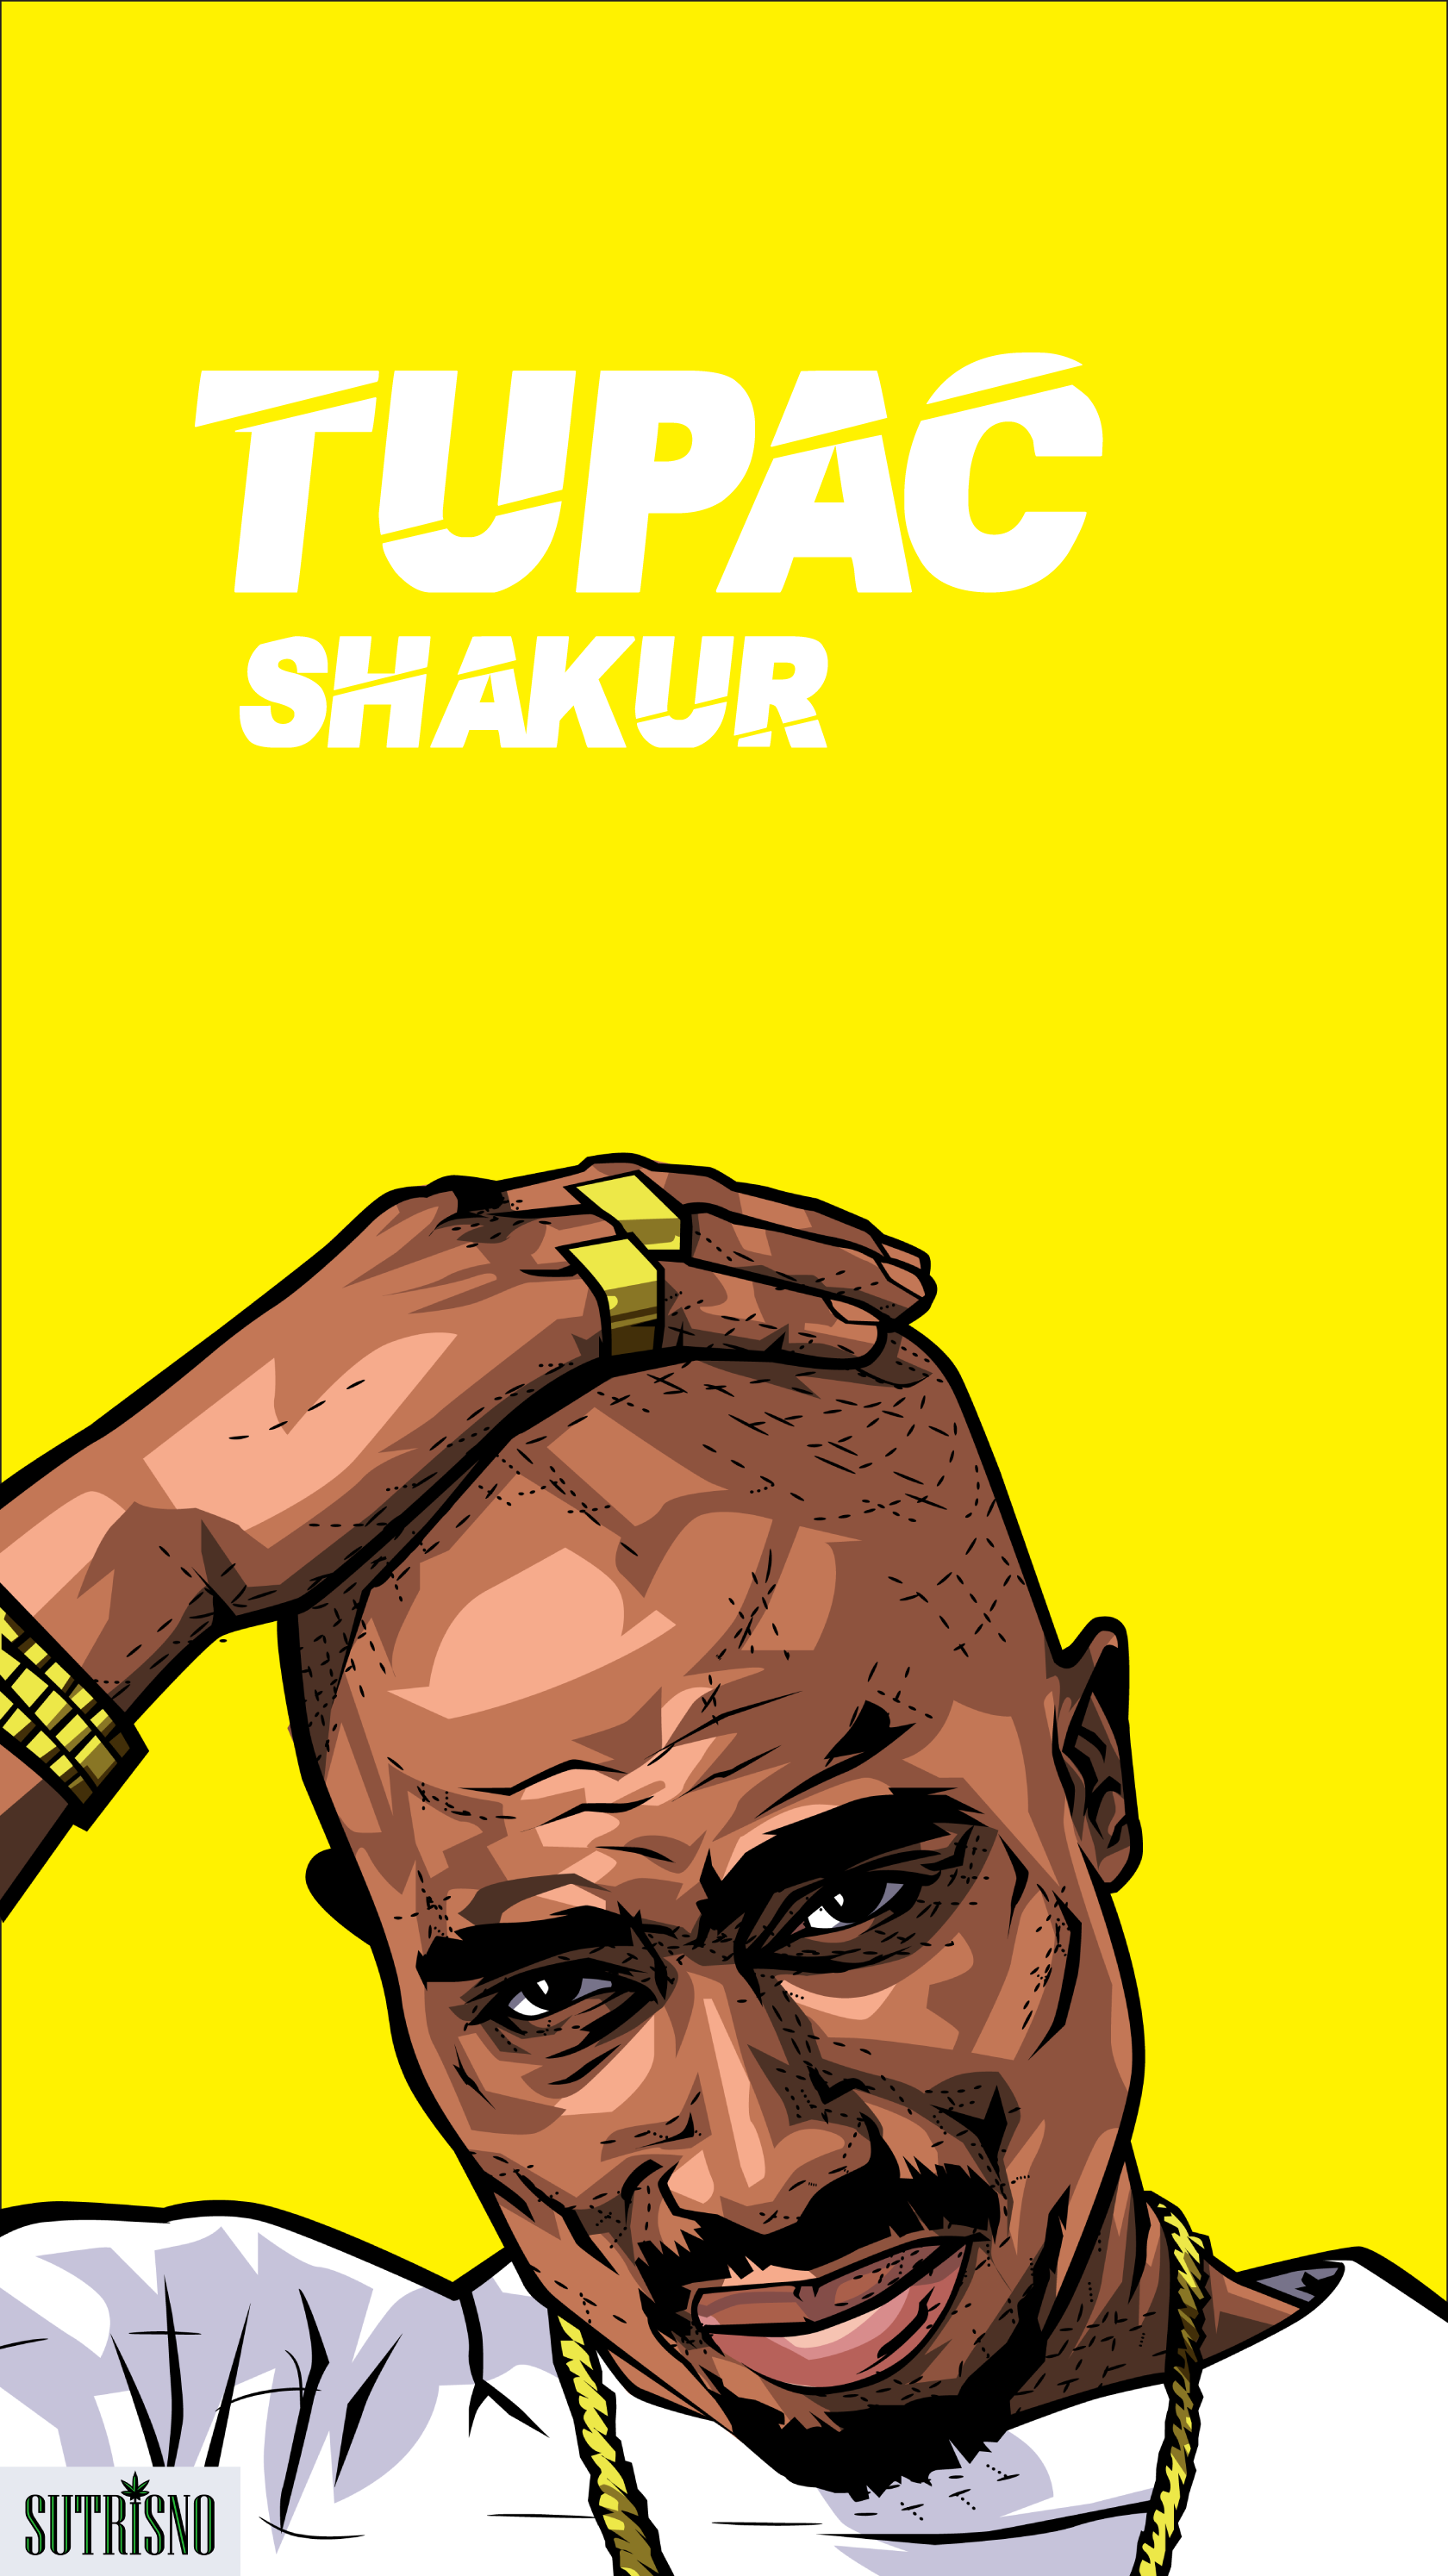 Tupac cartoon by Sutrisno for your phone wallpaper it's